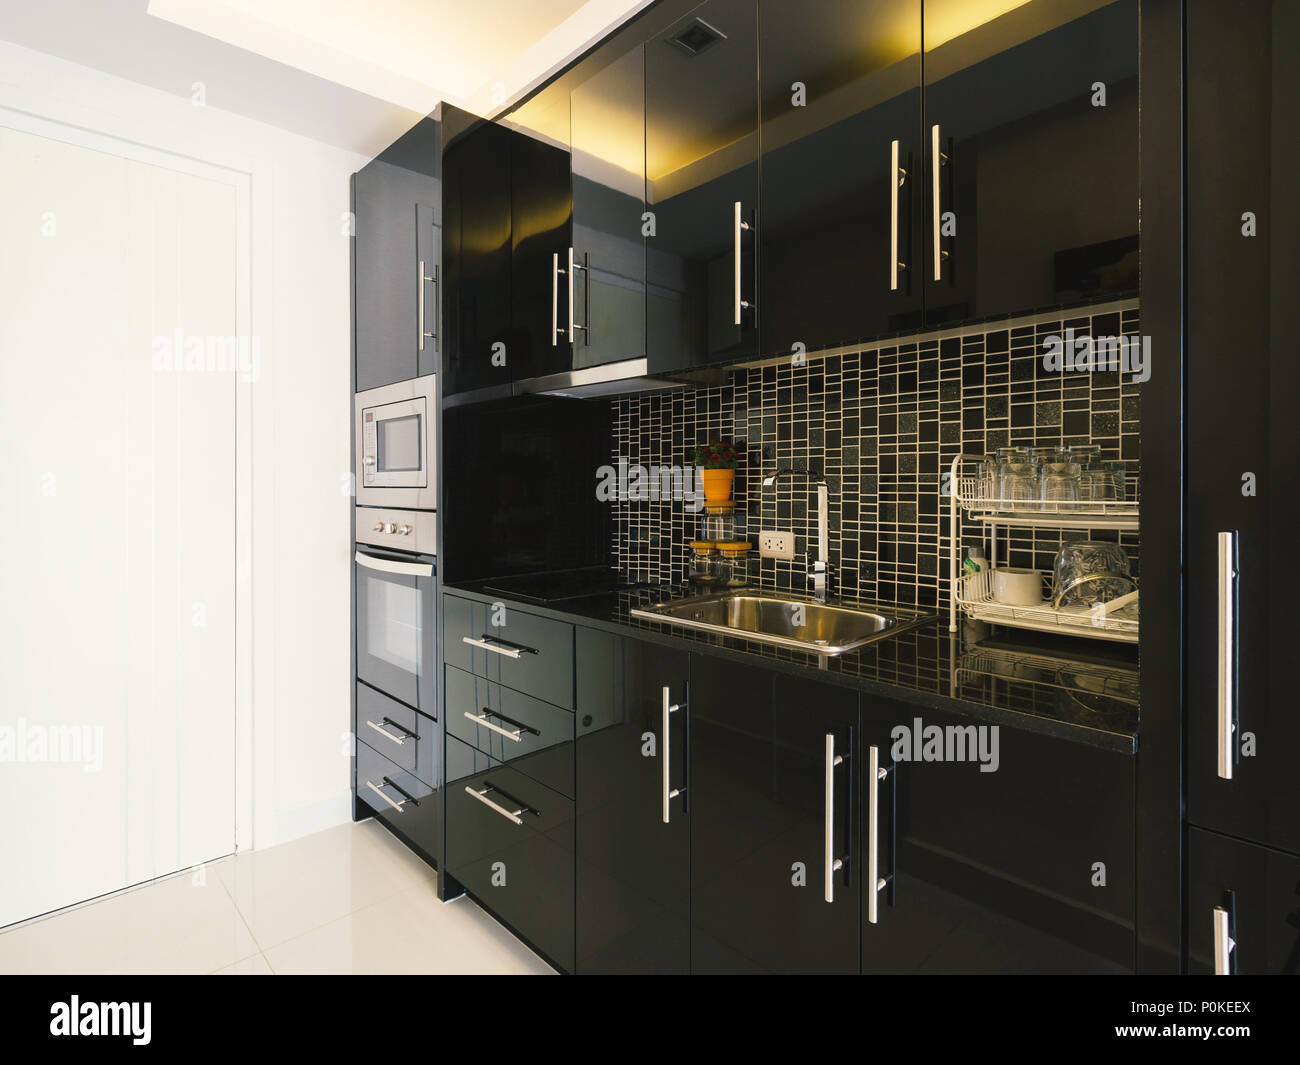 Modern Style Kitchen Interior In Modern Home With Black Color Ceramic And  Stainless Steel Appliances